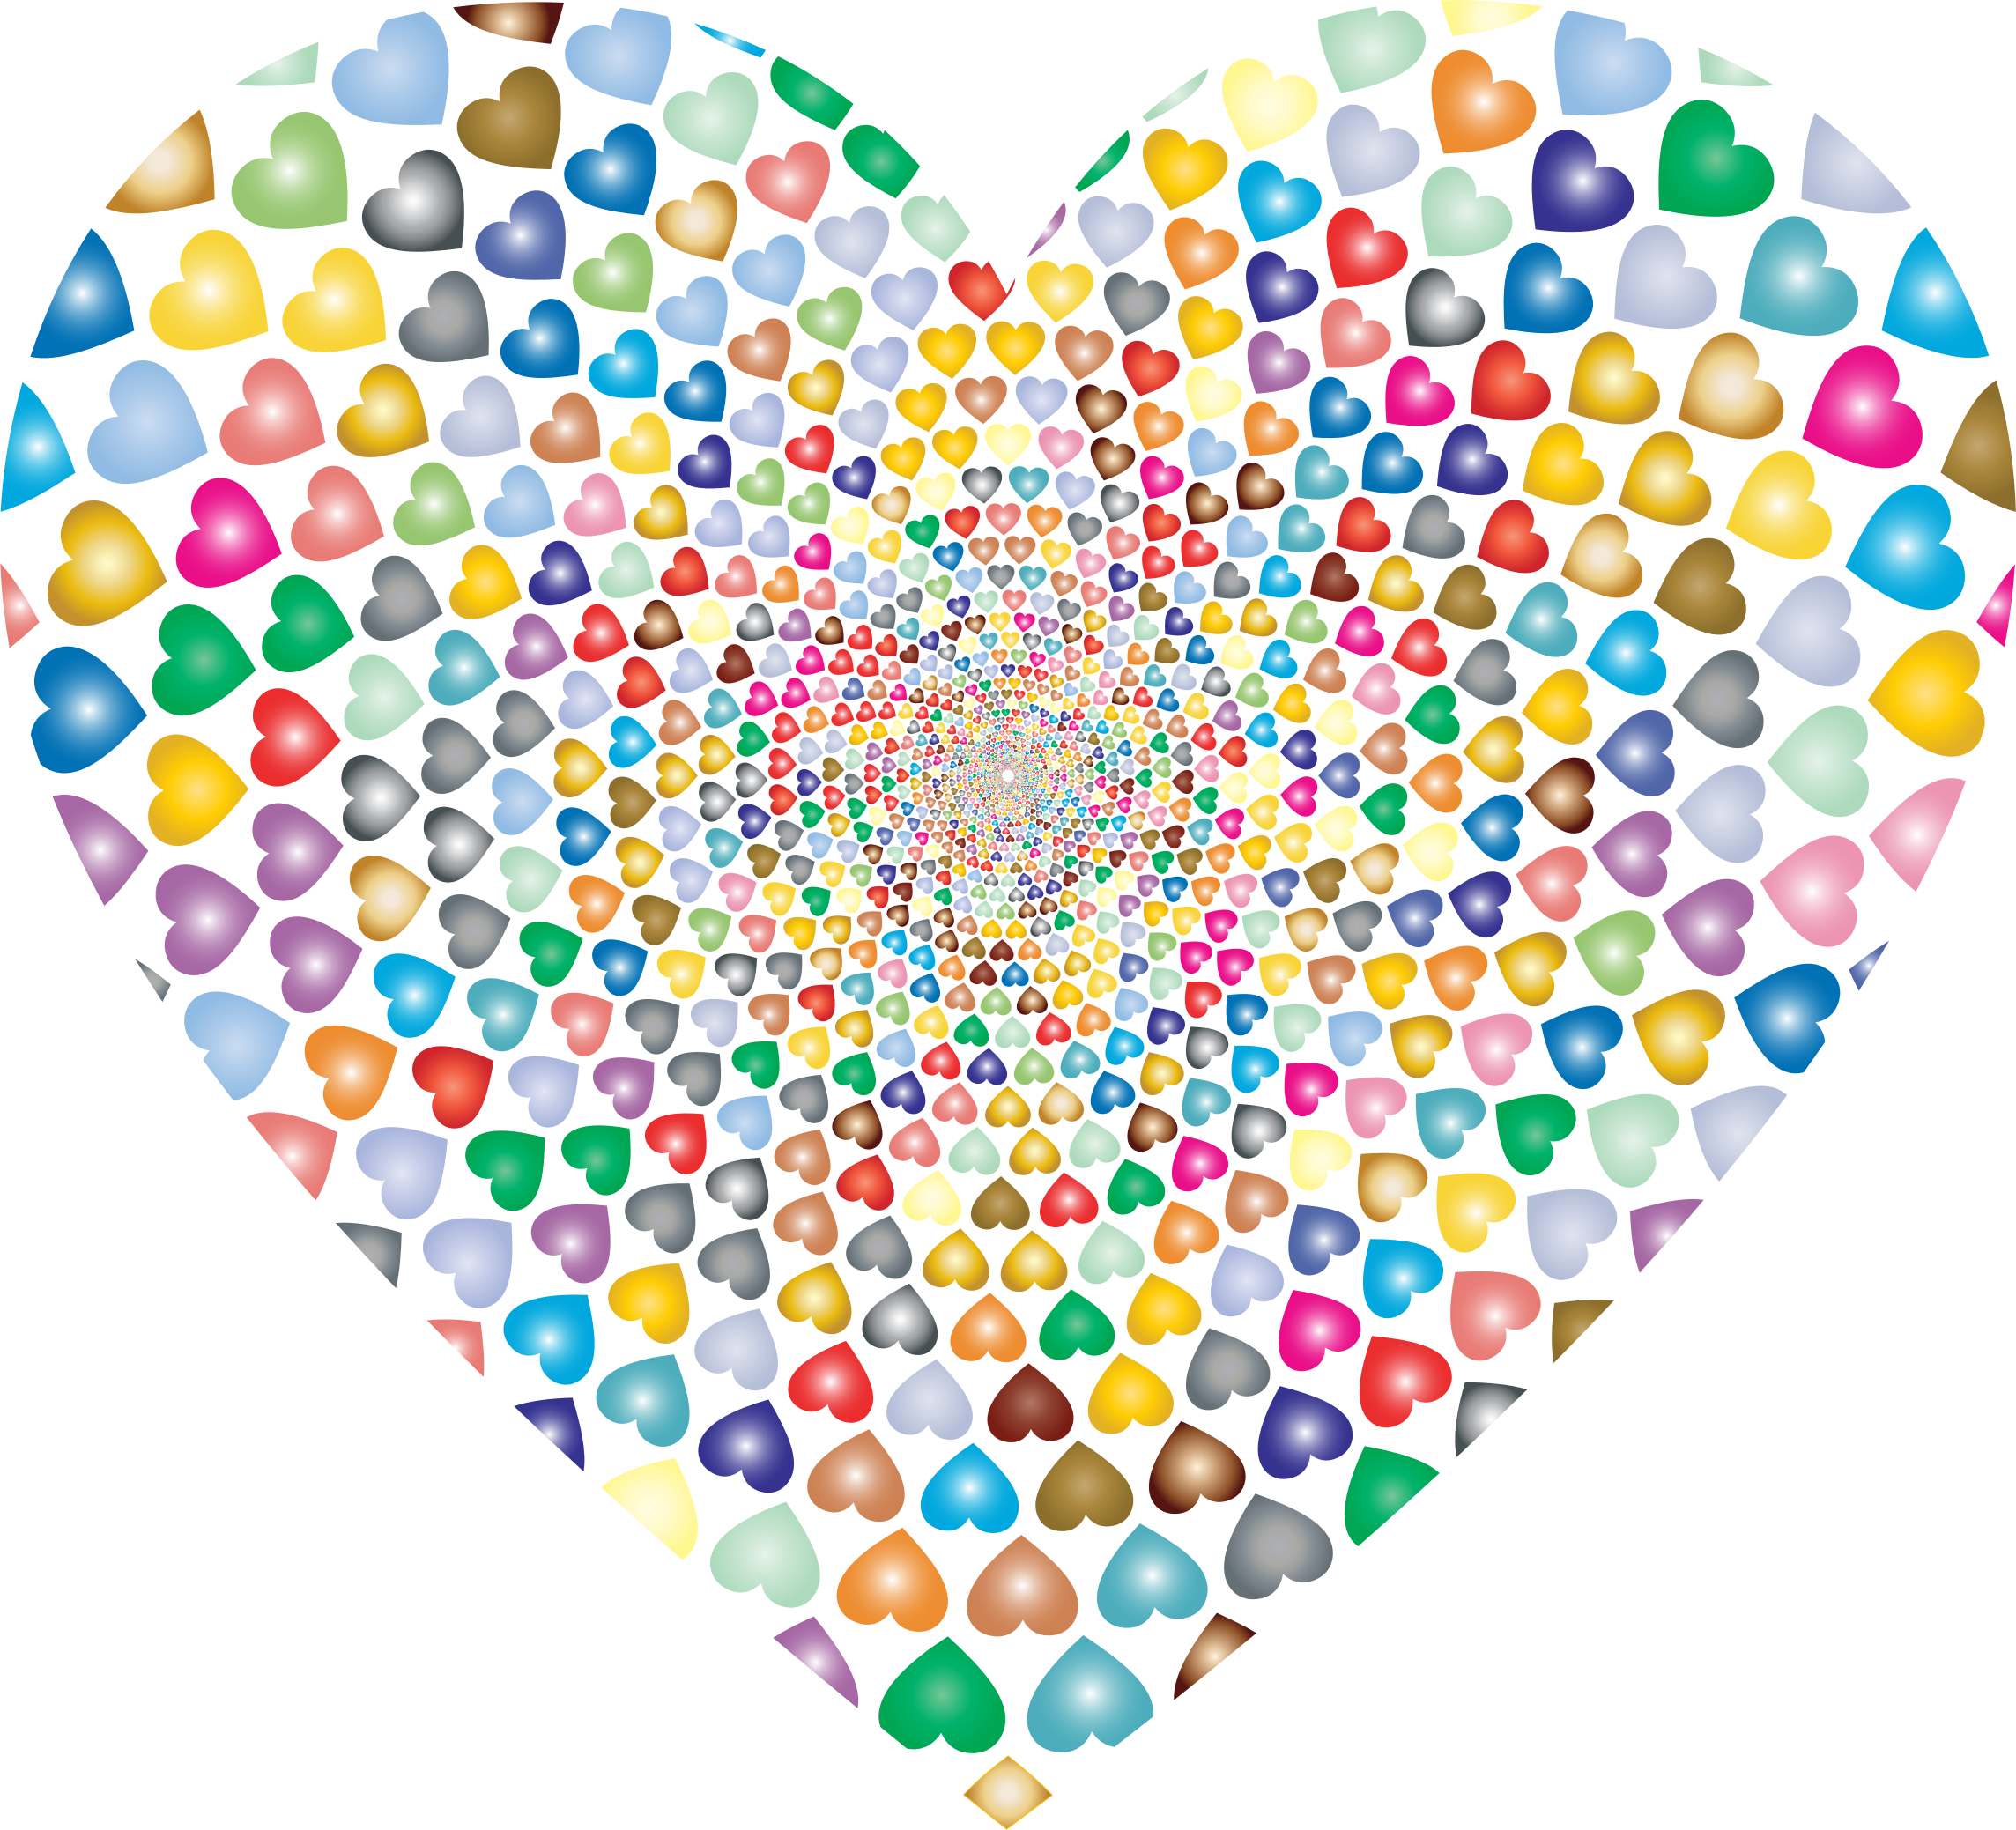 Engagement clipart heart. Prismatic hearts vortex big